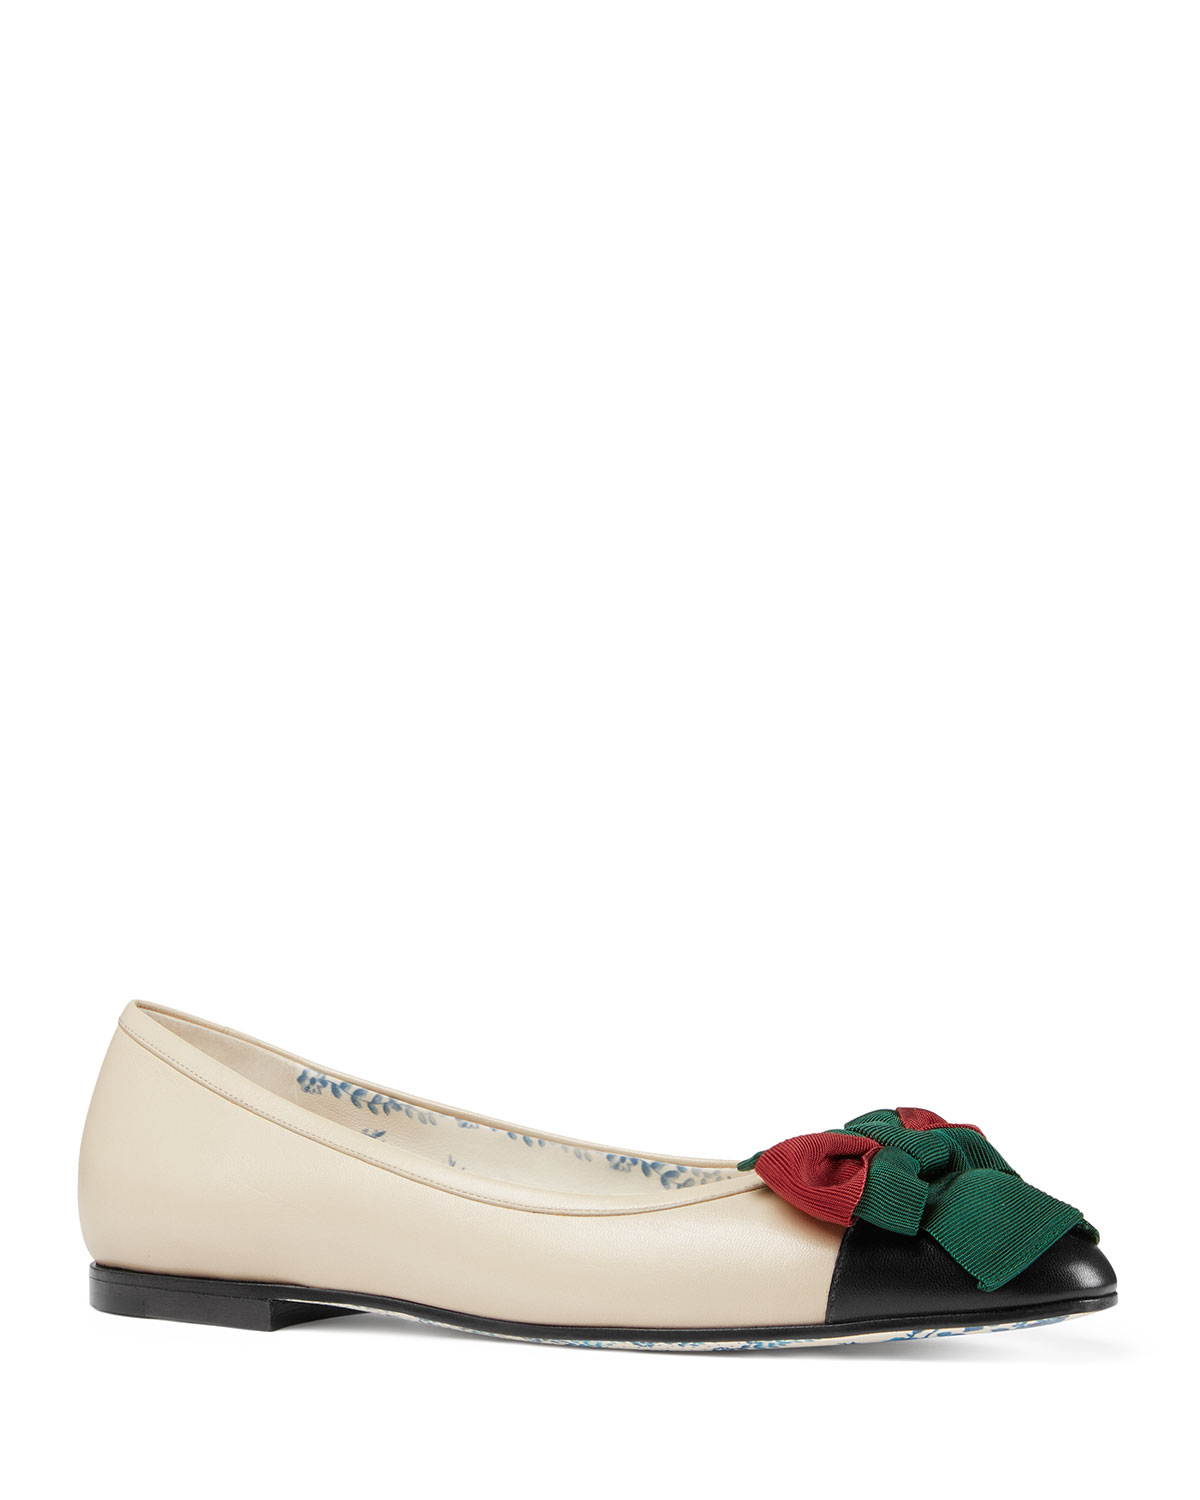 Jane Leather Ballet Flat With Bow